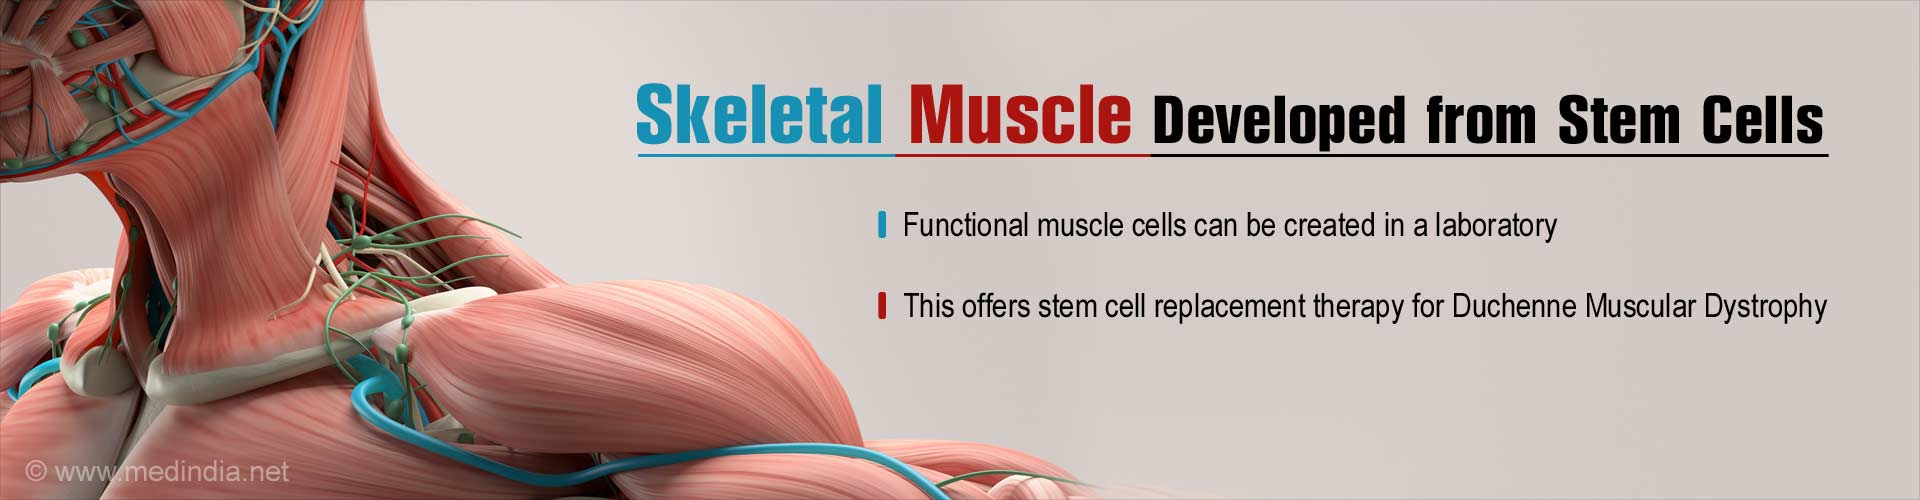 Skeletal Muscle Developed for Duchenne Muscular Dystrophy